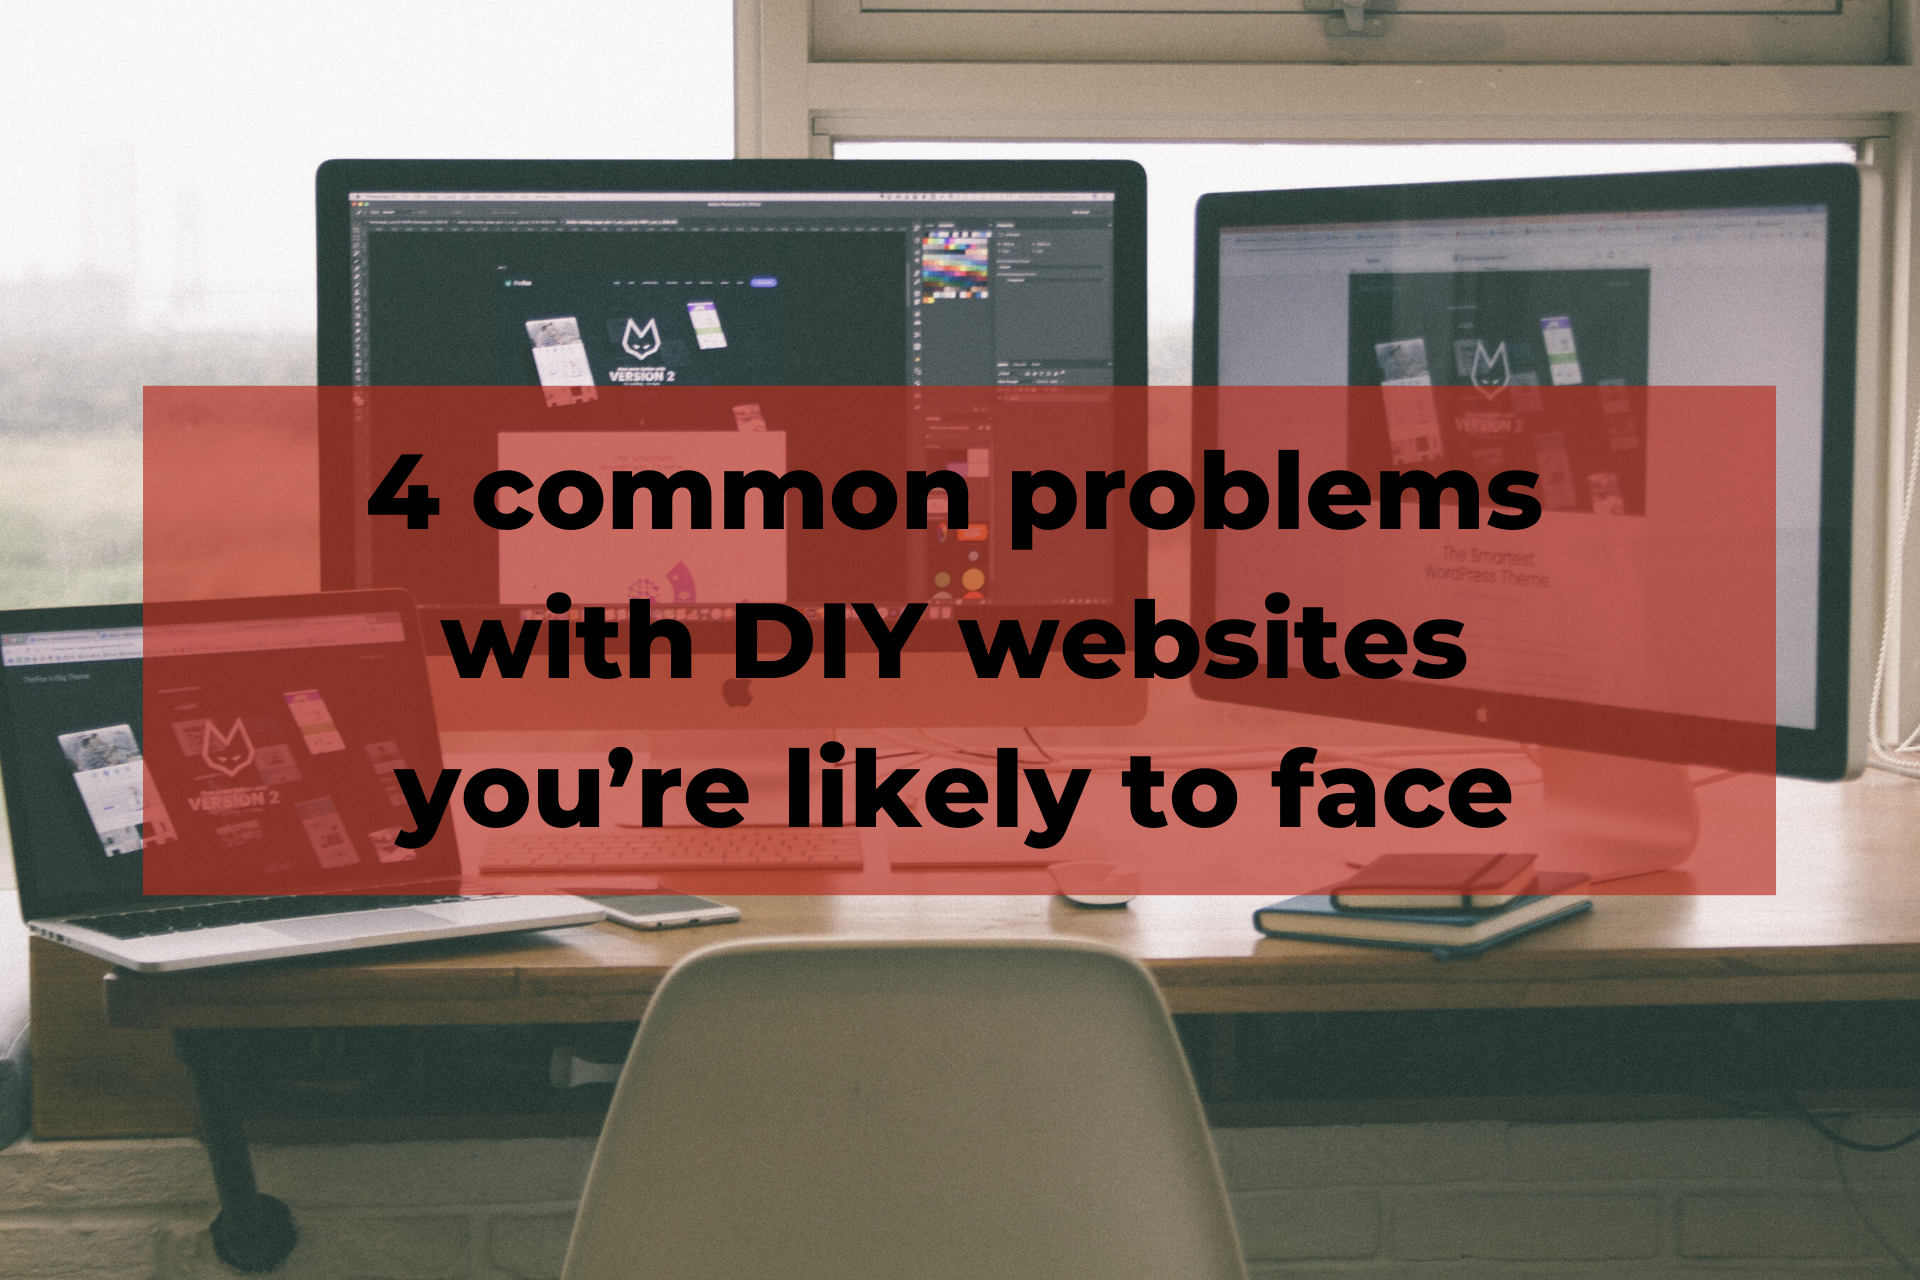 4 common problems with DIY websites you're likely to face